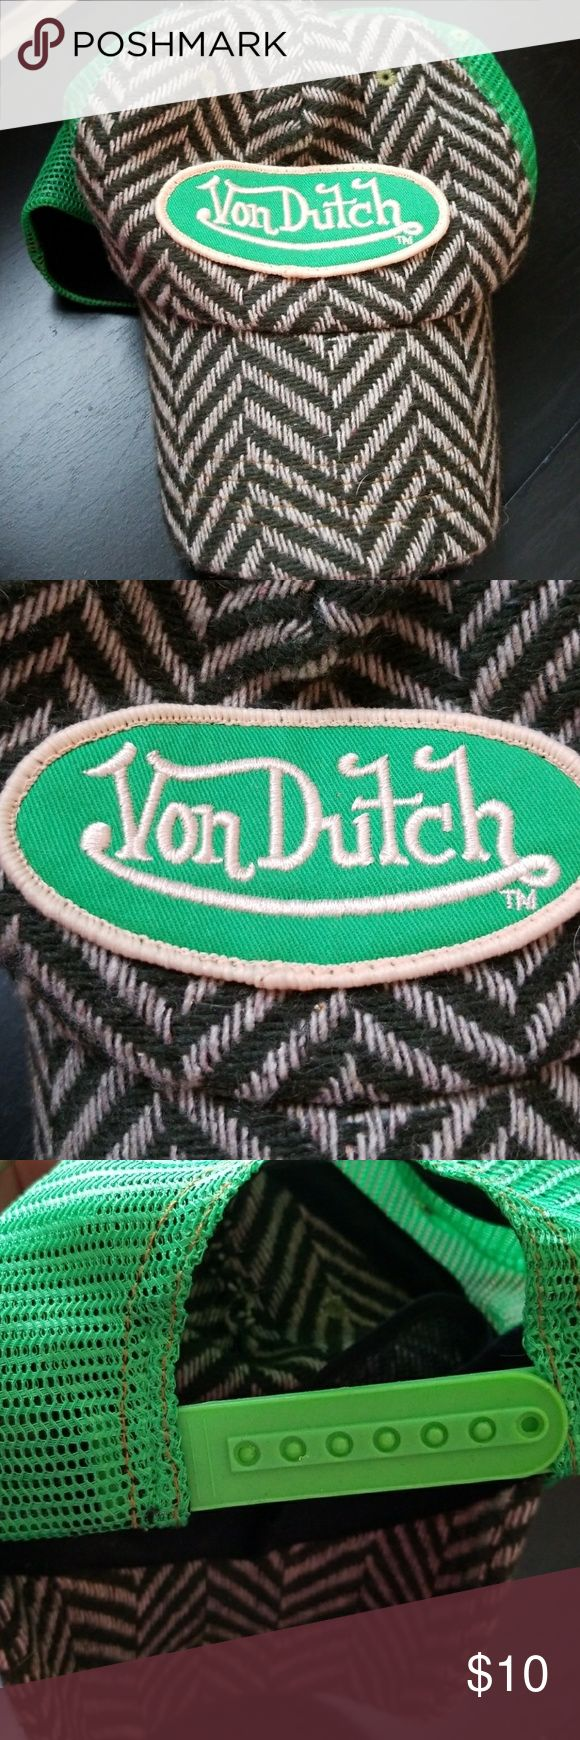 Women's Von Dutch Hat Women's Von Dutch hat with adjustable strap. Do not hesitate to ask questions (: Von Dutch Accessories Hats